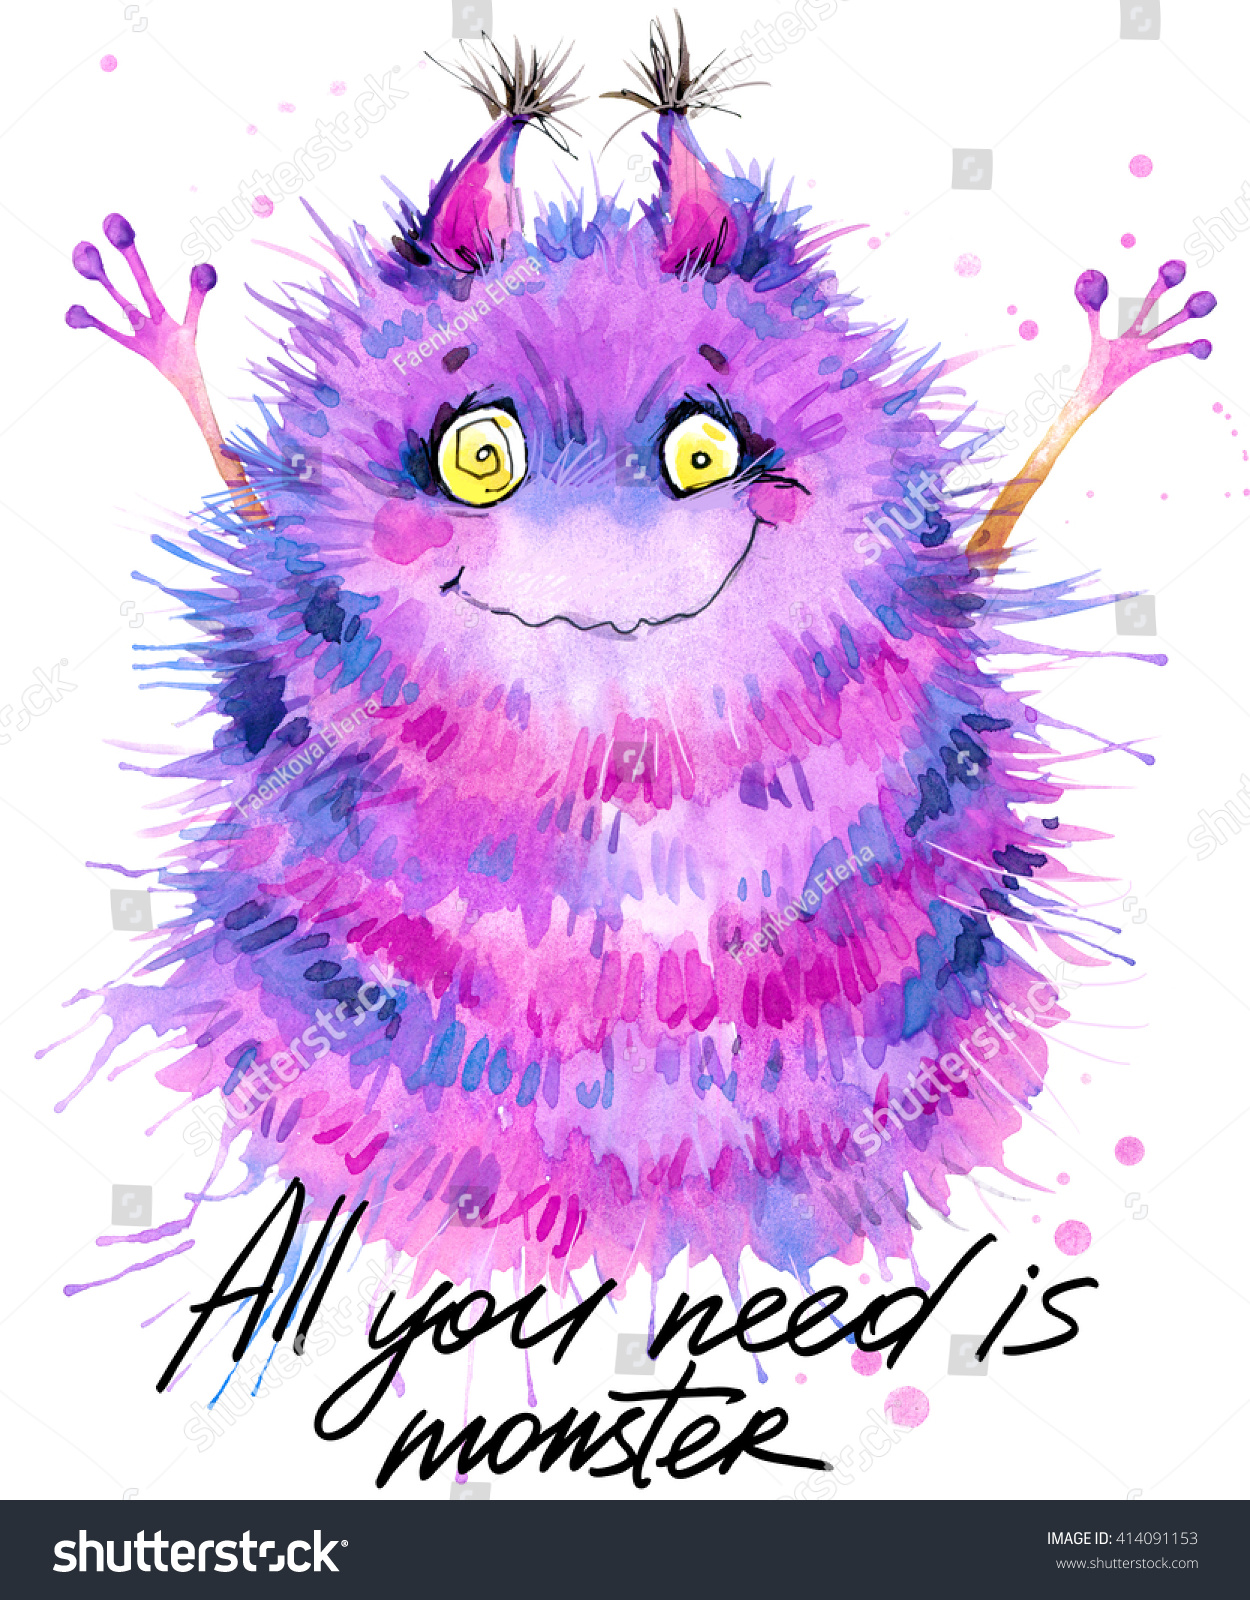 Cute monster watercolor illustration Fluffy Monster Cartoon cute monster All you need is monster hand written text Invitation card